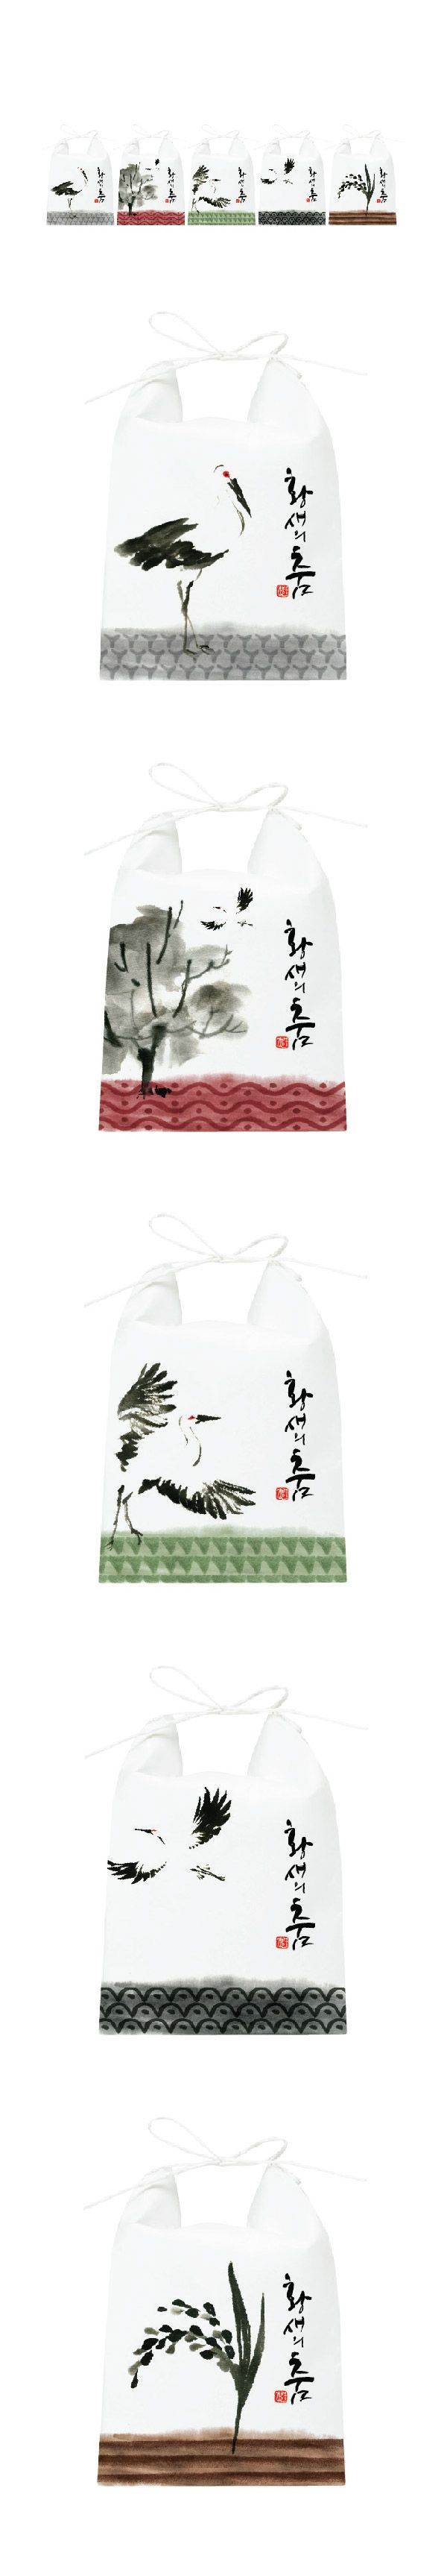 Concept Design for Organic Rice Package Design황새농법을 이용한 친환경 쌀 '황새의 춤' 패키지 디자인 시안Calligraphy By Kangbyungin for Eco-institute for Oriental Stork